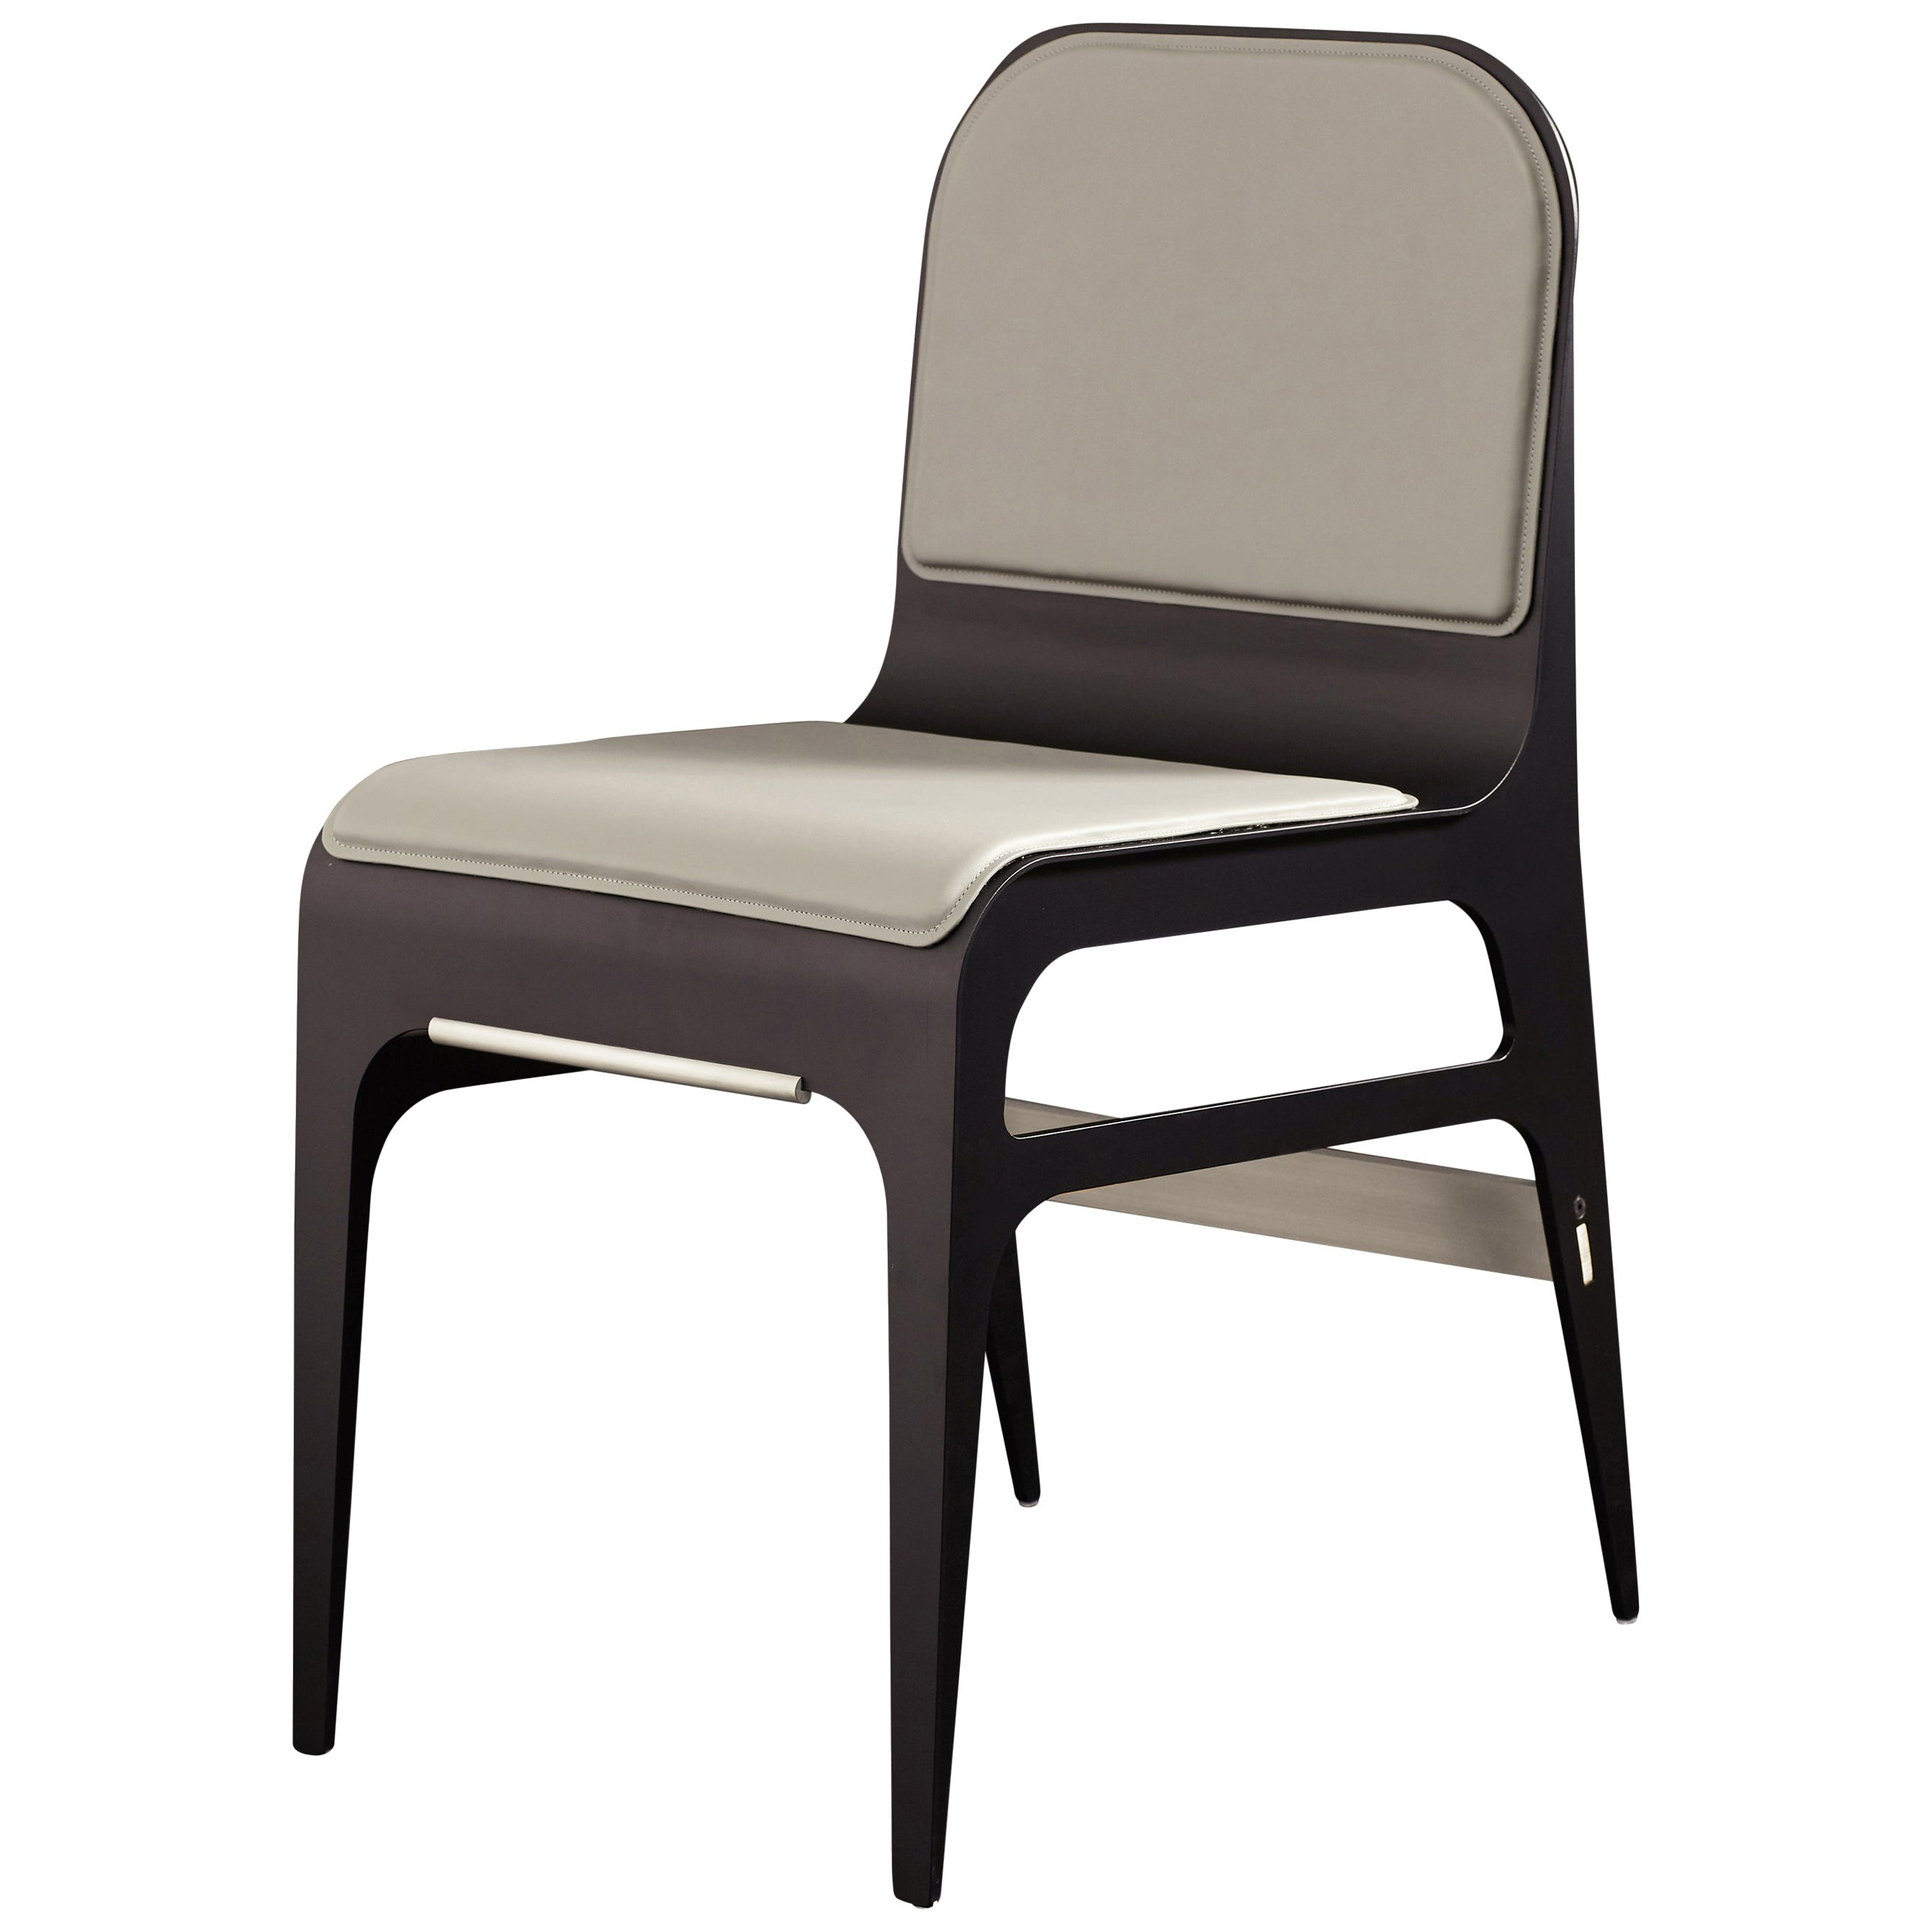 Bardot Dining Chair with Leather Seat and Satin Nickel Hardware by Gabriel Scott